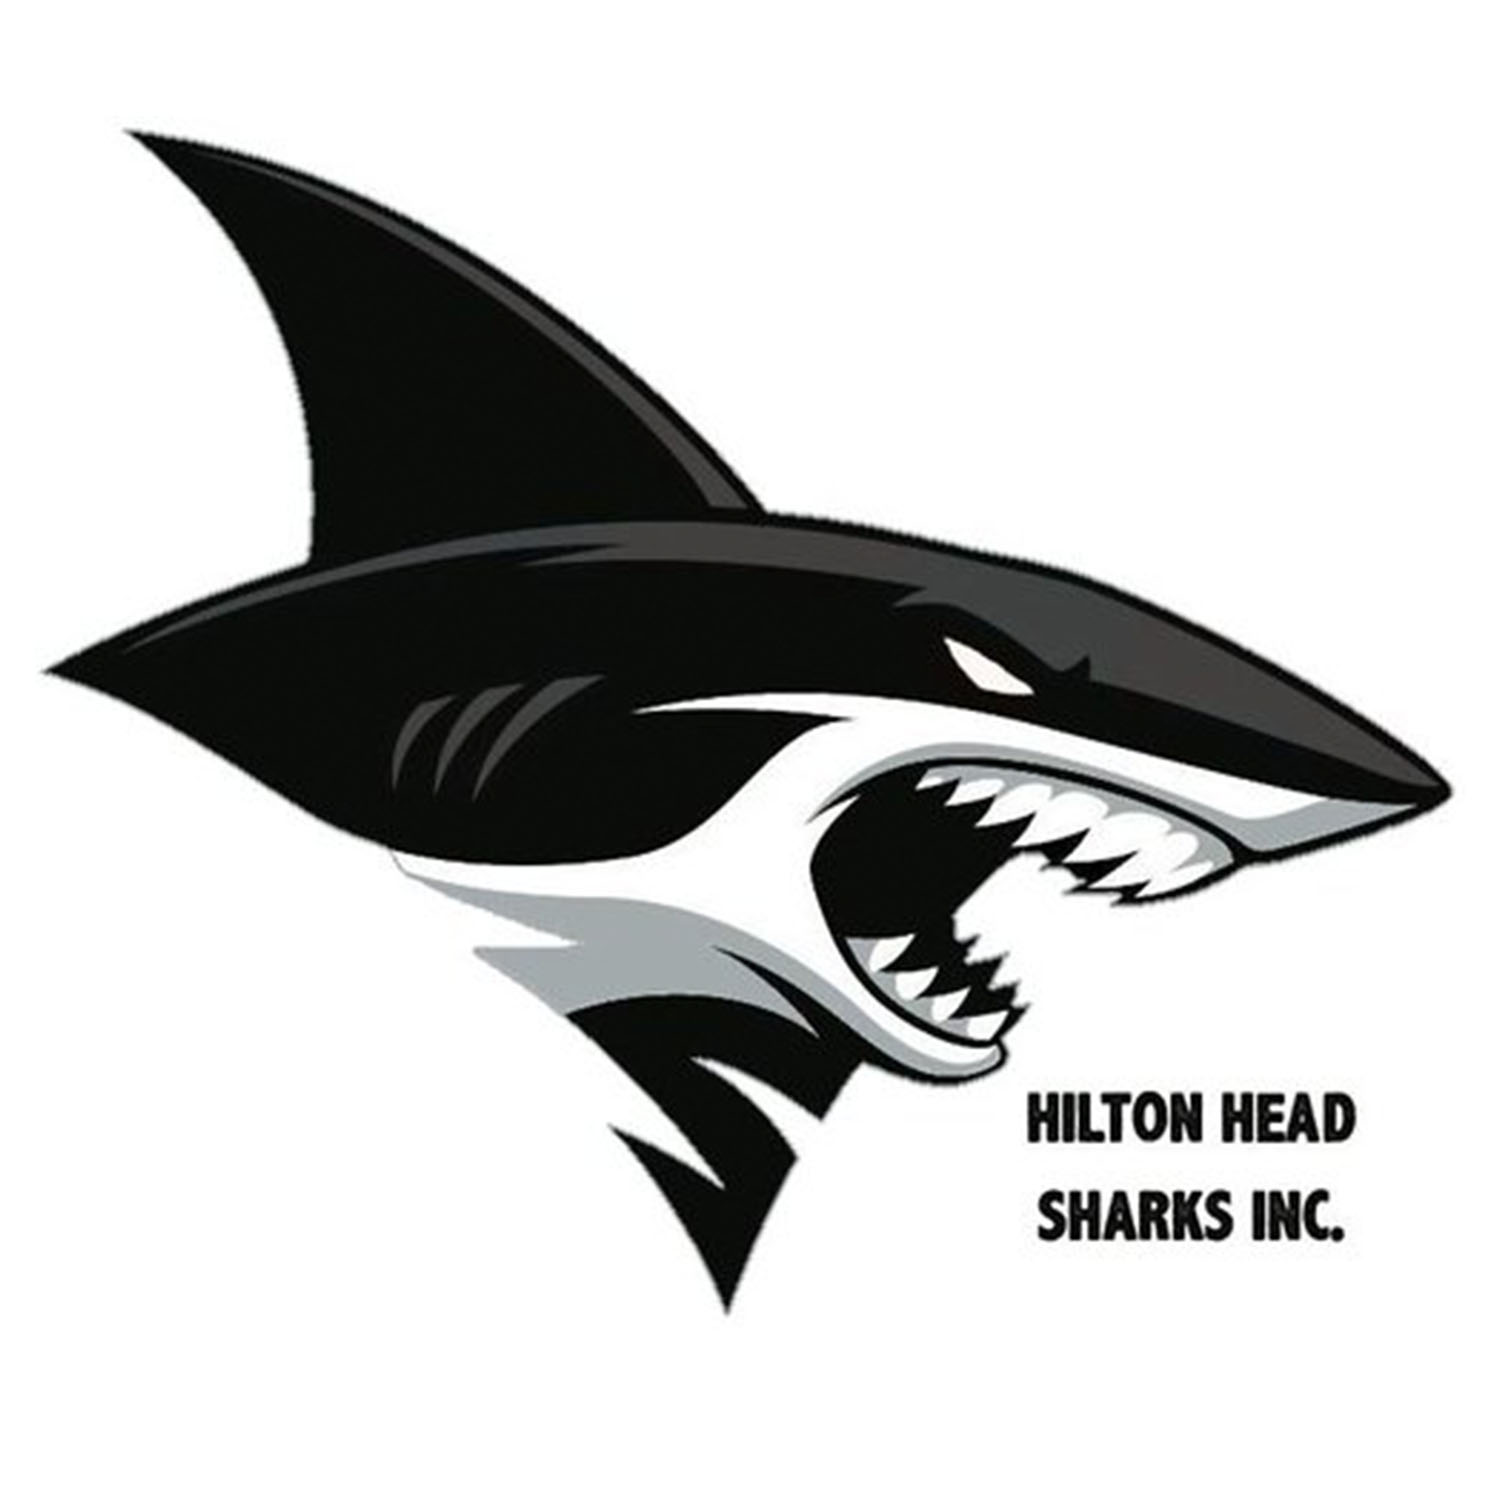 hilton head sharks inc. - ROOT FOR YOUR HOME TEAM!That is exactly what we are doing at Roark & Company. The Hilton Head Sharks are a non-profit adult football organization that was started in 2012 by brothers Daryle and Renaldo Mitchell. The Mitchell brothers wanted an opportunity to continue playing football after finishing college and believed the team would give other athletes the opportunity to do the same. The Sharks have gown and even though it is still a team of leisure it has also become a platform for players and coaches alike who are striving to be recruited by colleges, professional teams and for leisure.